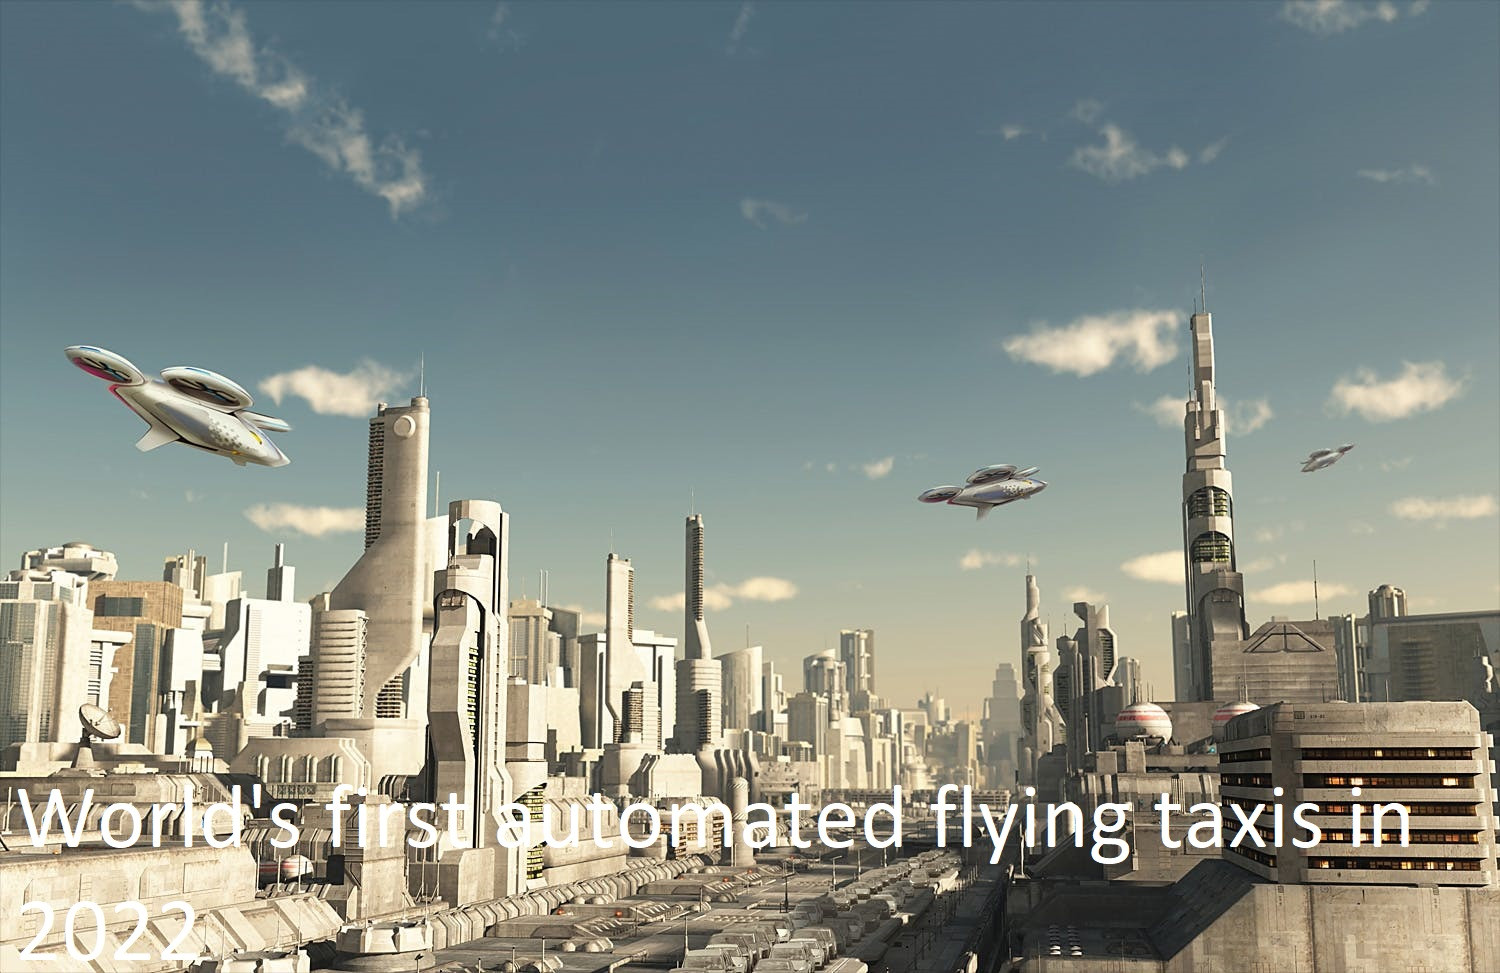 World's first automated flying taxis